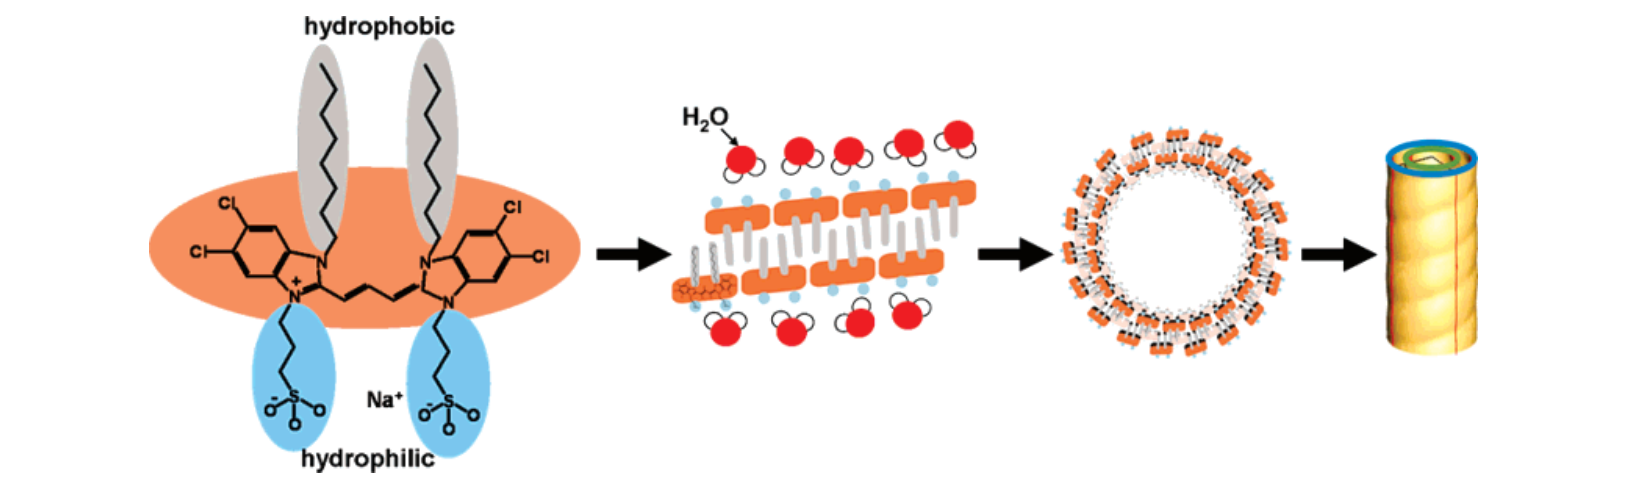 SCHEME 1: (Left to Right) Chemical Structure of C8S3 Cyanine Dye, Showing the Most Hydrophilic and Hydrophobic Regions; Simple Sketch of Bilayer Formation (Not Scaled); Top View of Double-Walled Tubule Formed by the Bilayer (Not Scaled, Simplified); Three-Dimensional Image of Helical, Double-Walled Tubule